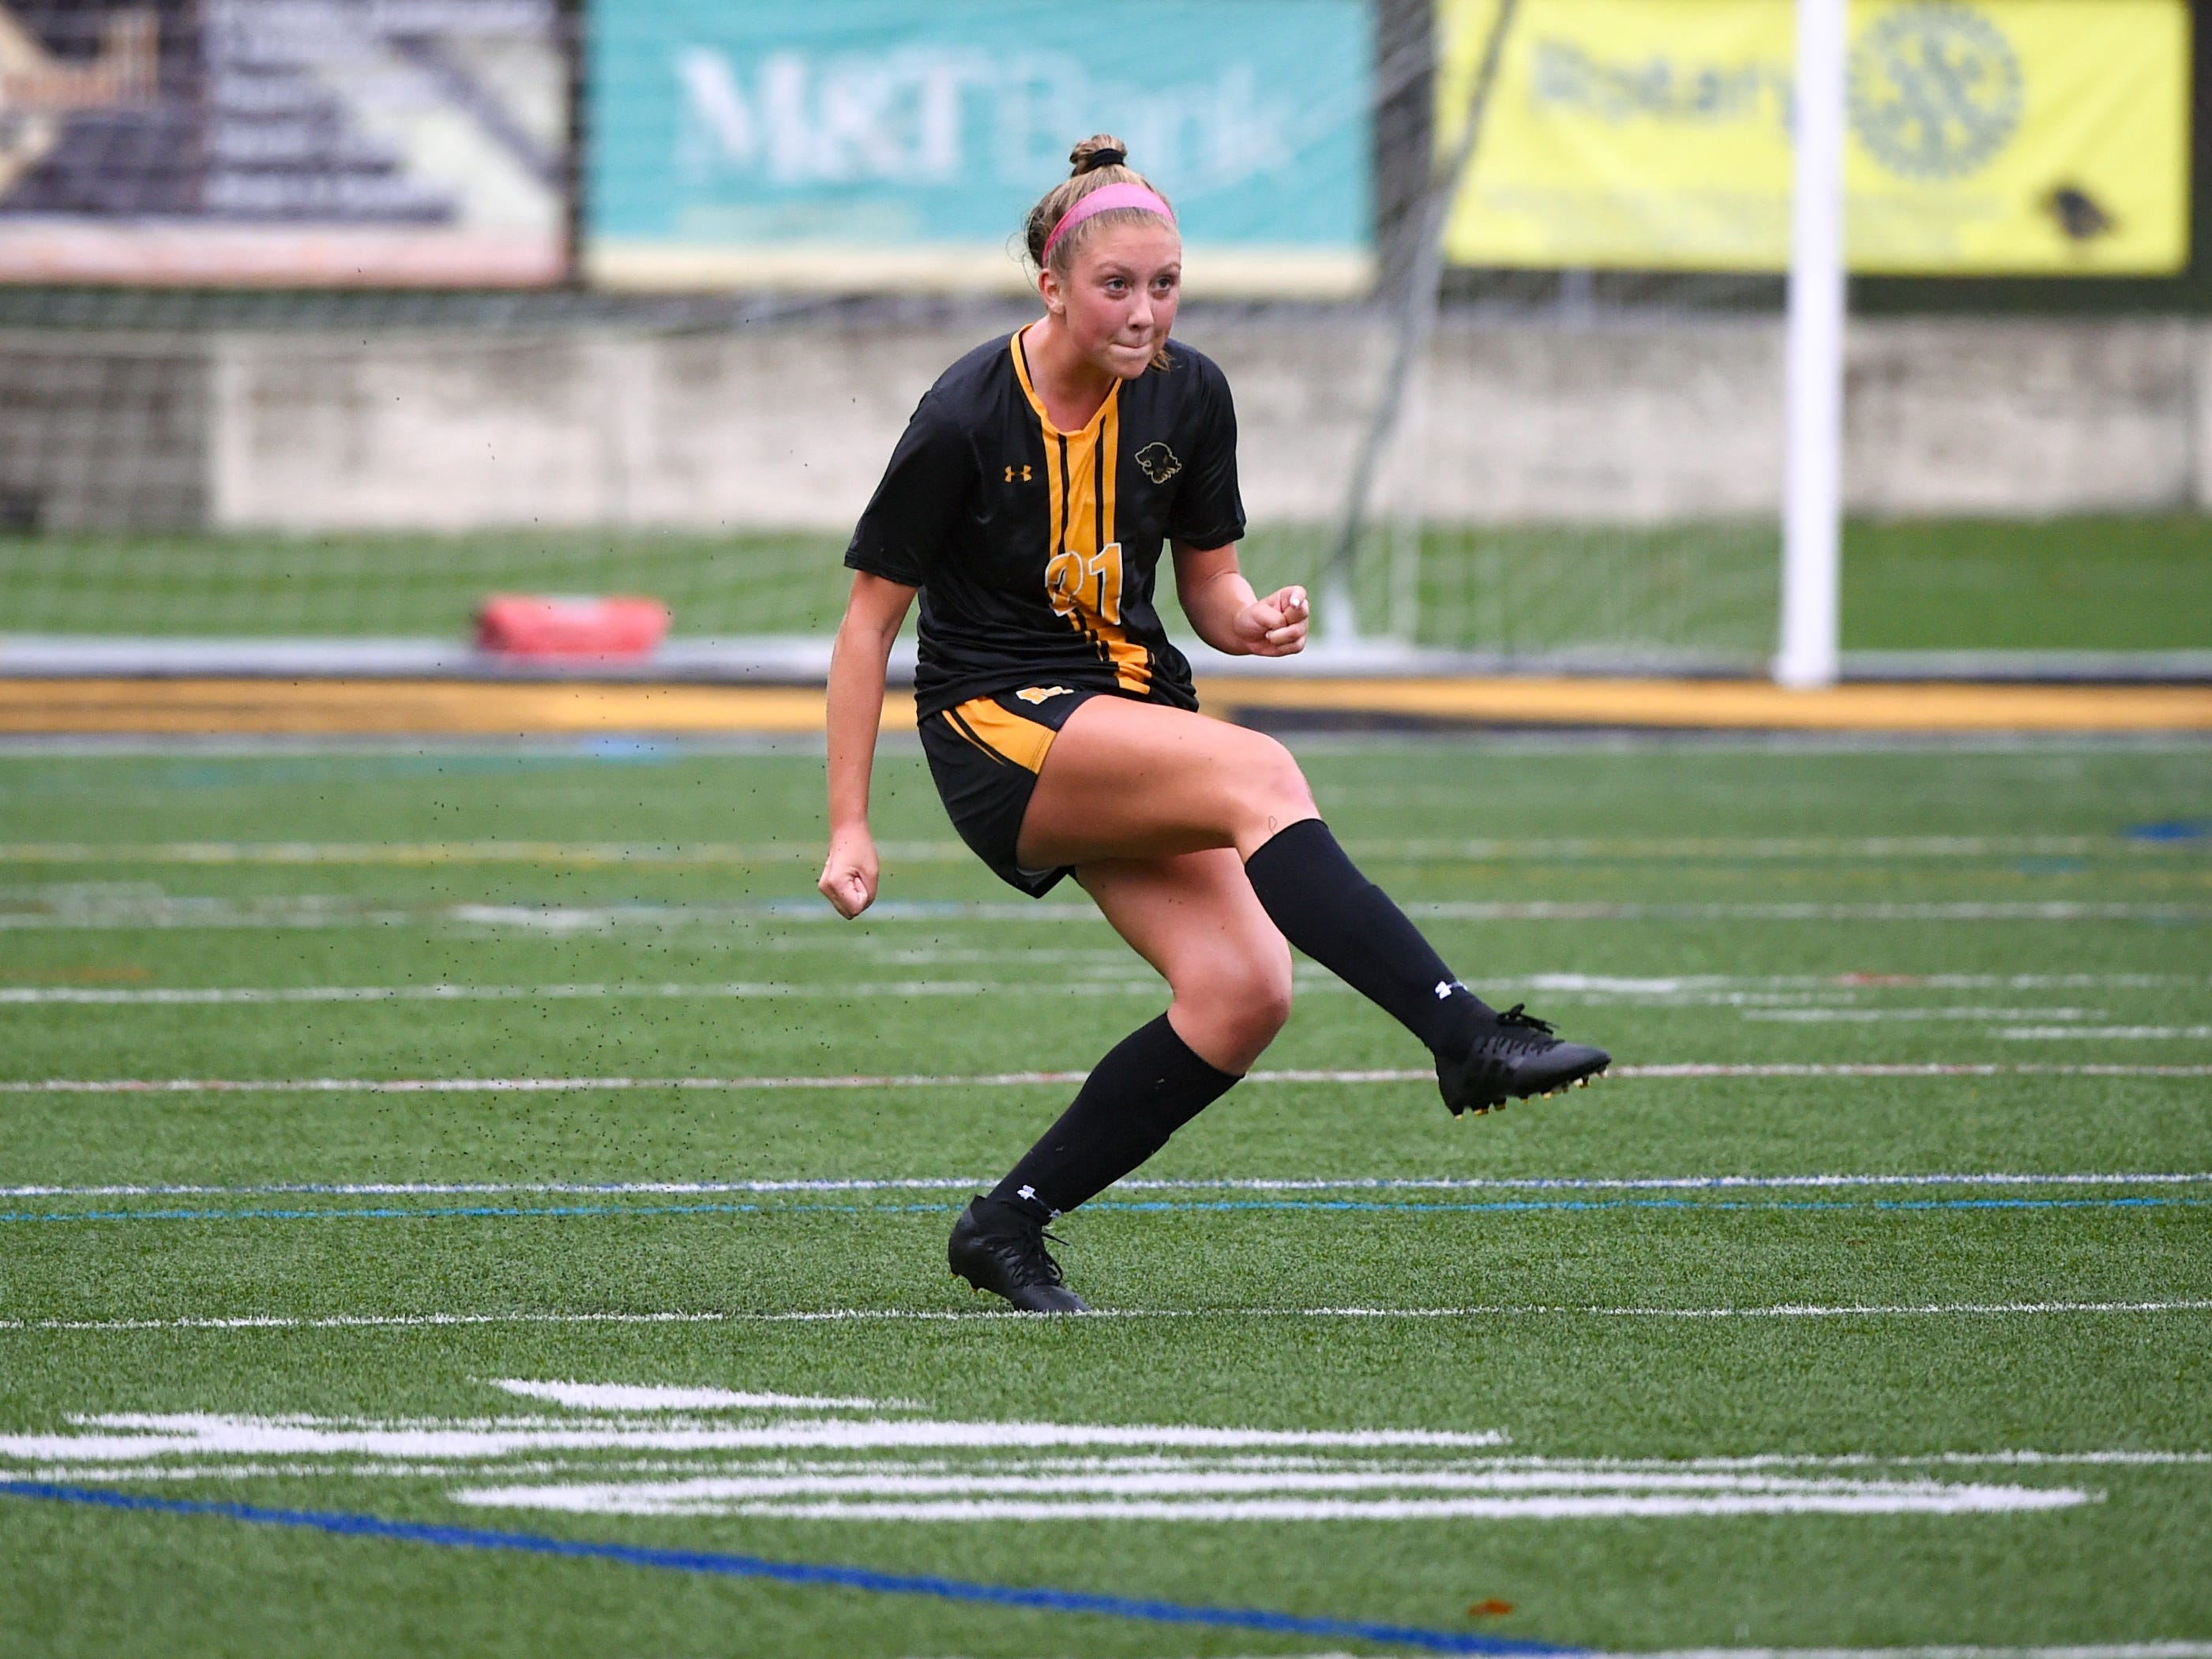 Red Lion's Keirsten Strong (21) takes the free kick during the girls soccer game, October 11, 2018. The Lady Lions beat the Wildcats 4-0.